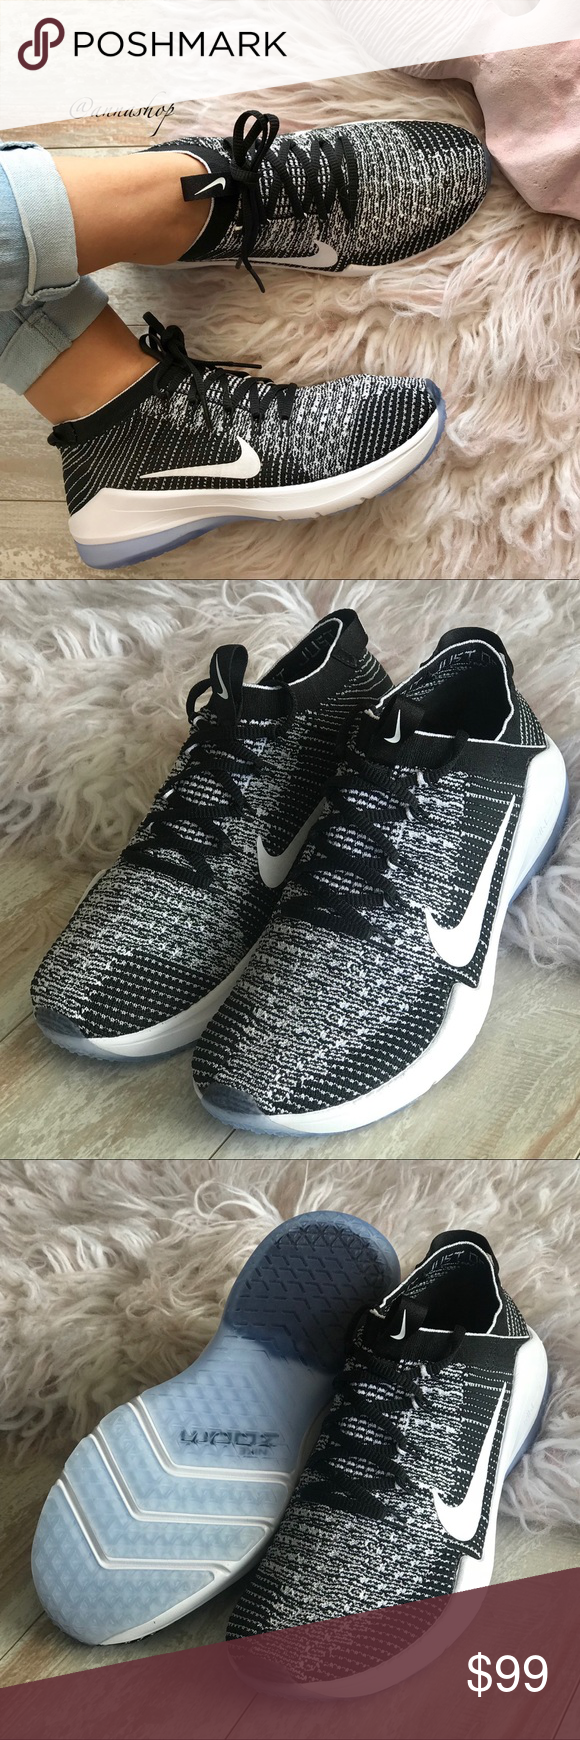 6e6dfc900fb7 NWT Nike Zoom fearless Flyknit 2 Brand new with box no lid. Price is firm